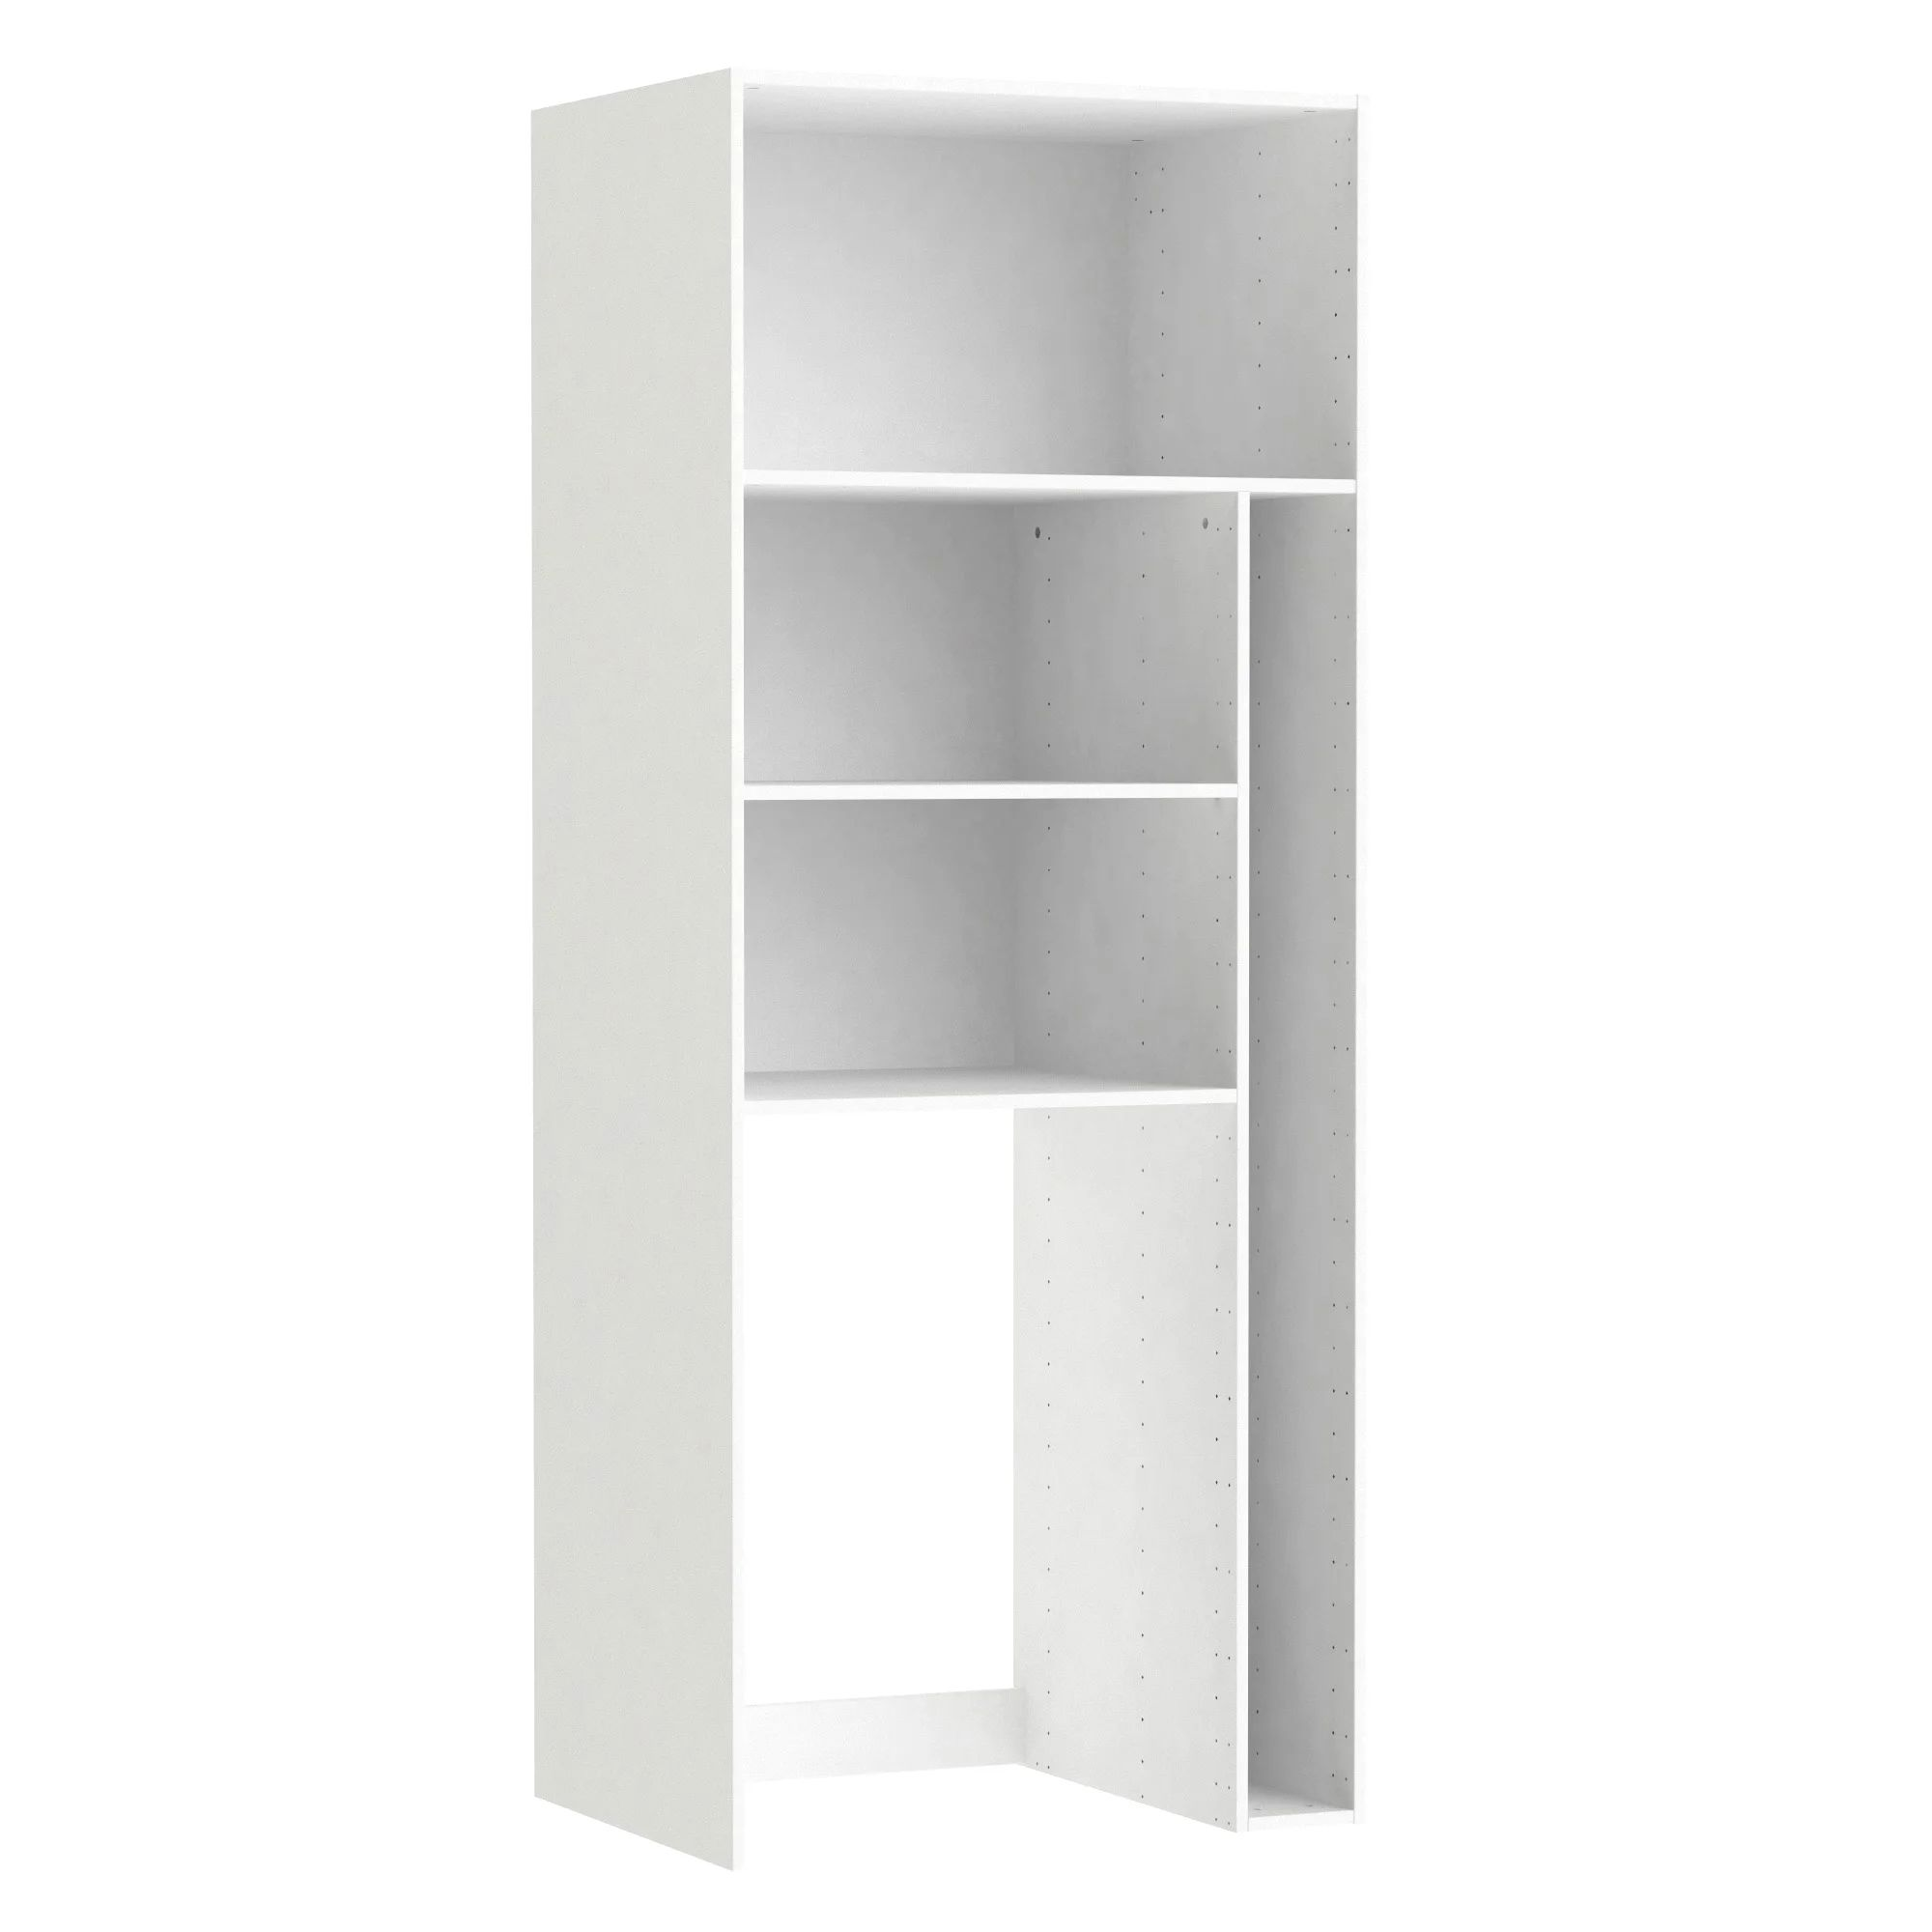 Caisson Buanderie Spaceo Home Blanc H 200 X L 80 X P 60 Cm Leroy Merlin